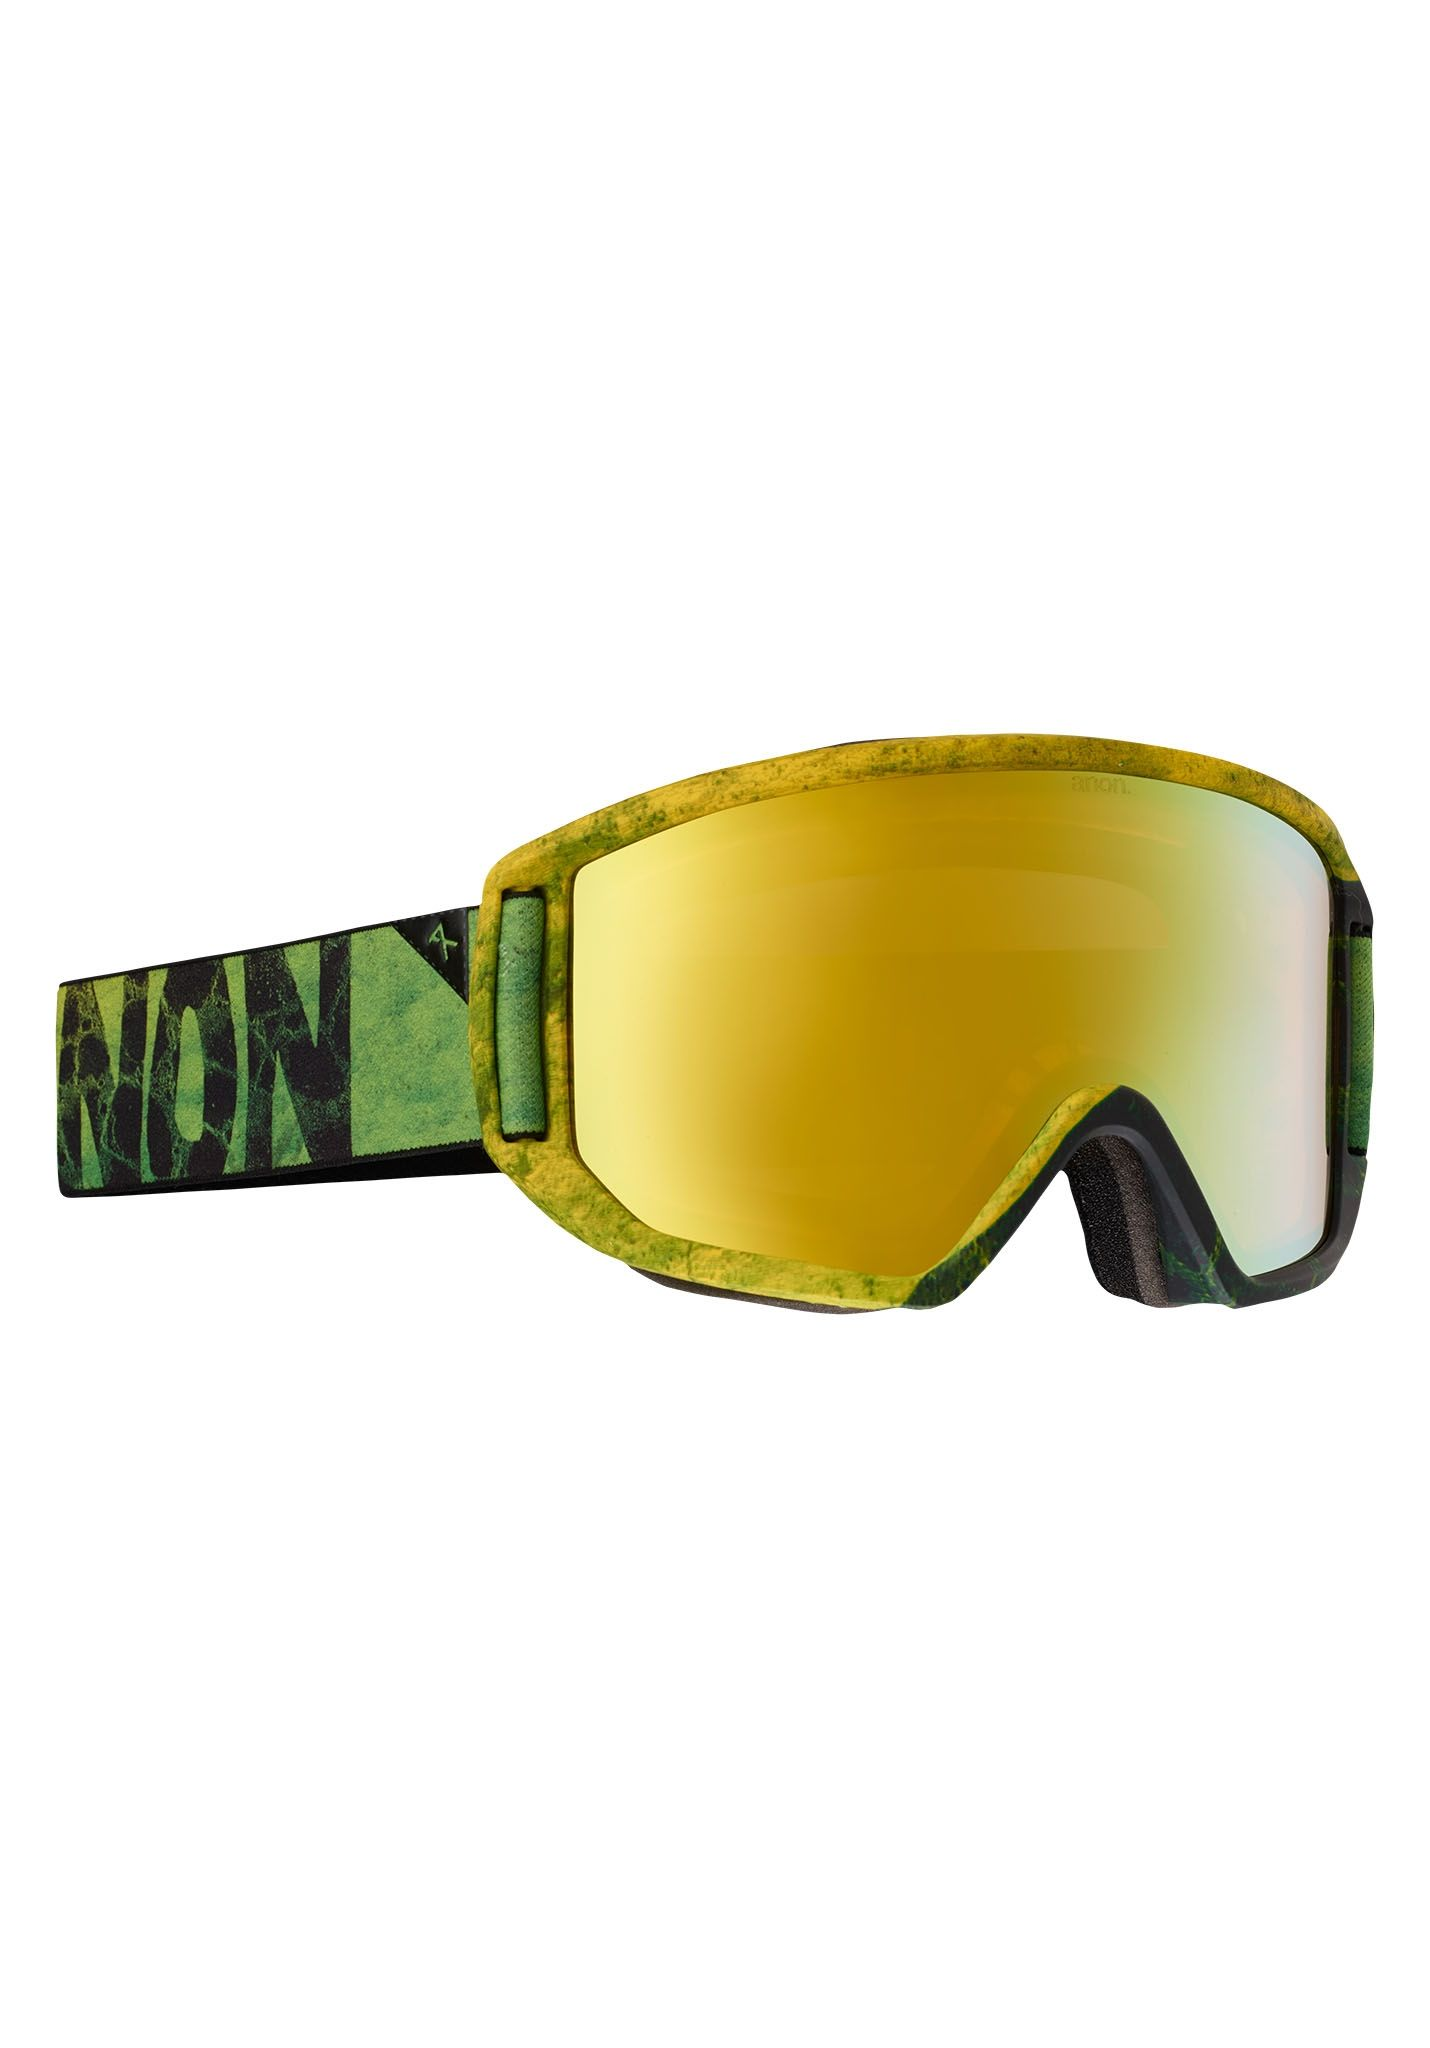 91af381feb13 ANON Relapse - Snowboard Goggle for Men - Green - Planet Sports